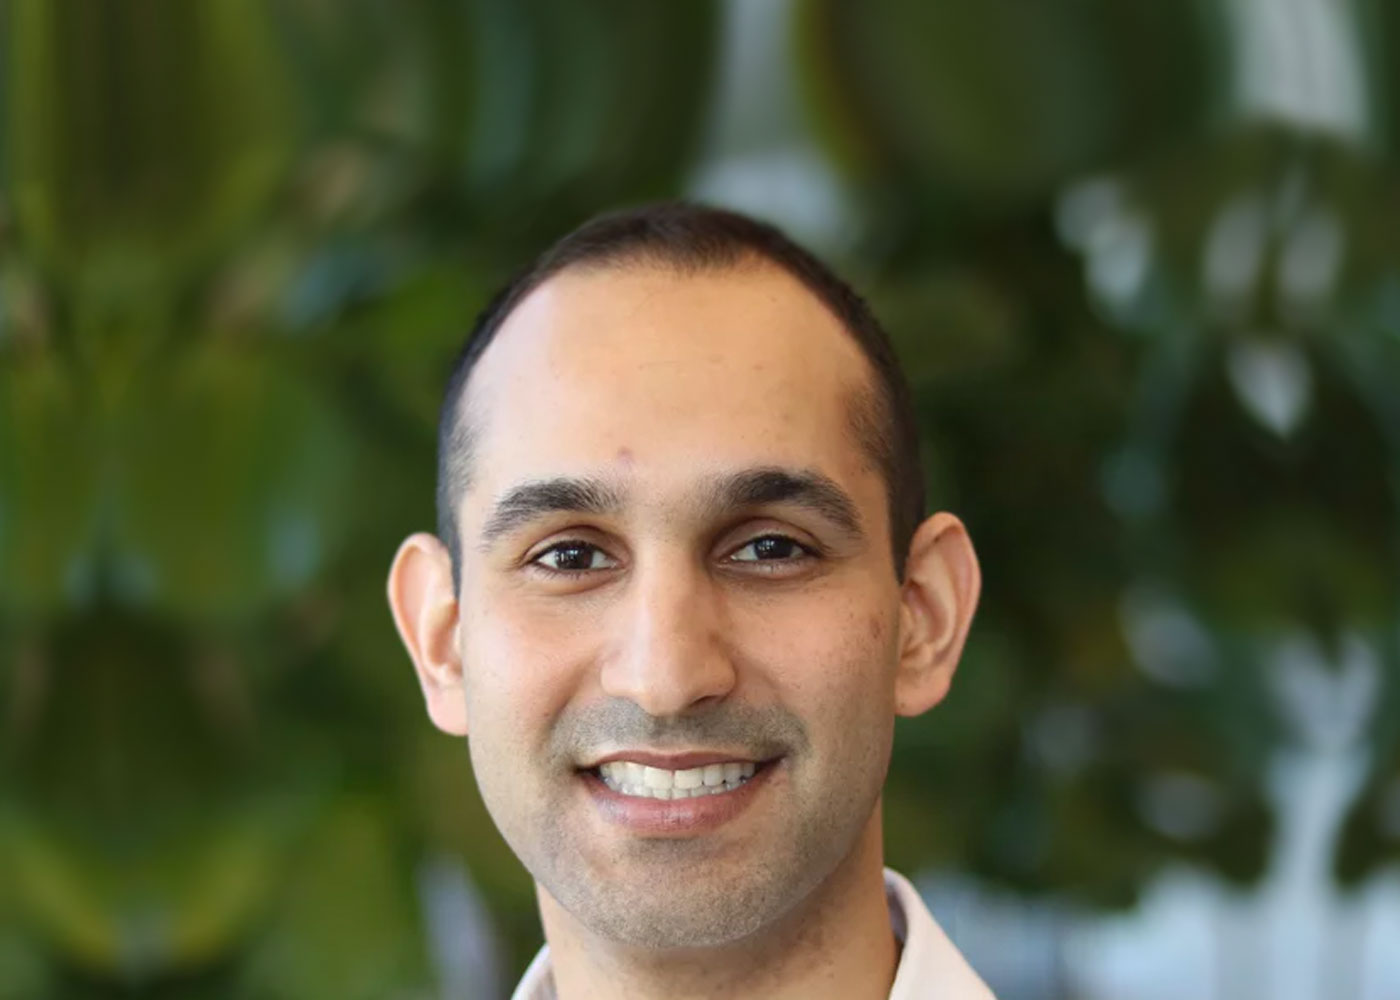 Q&A with Inderpreet Banga, part 1: technology and partnerships in rate parity